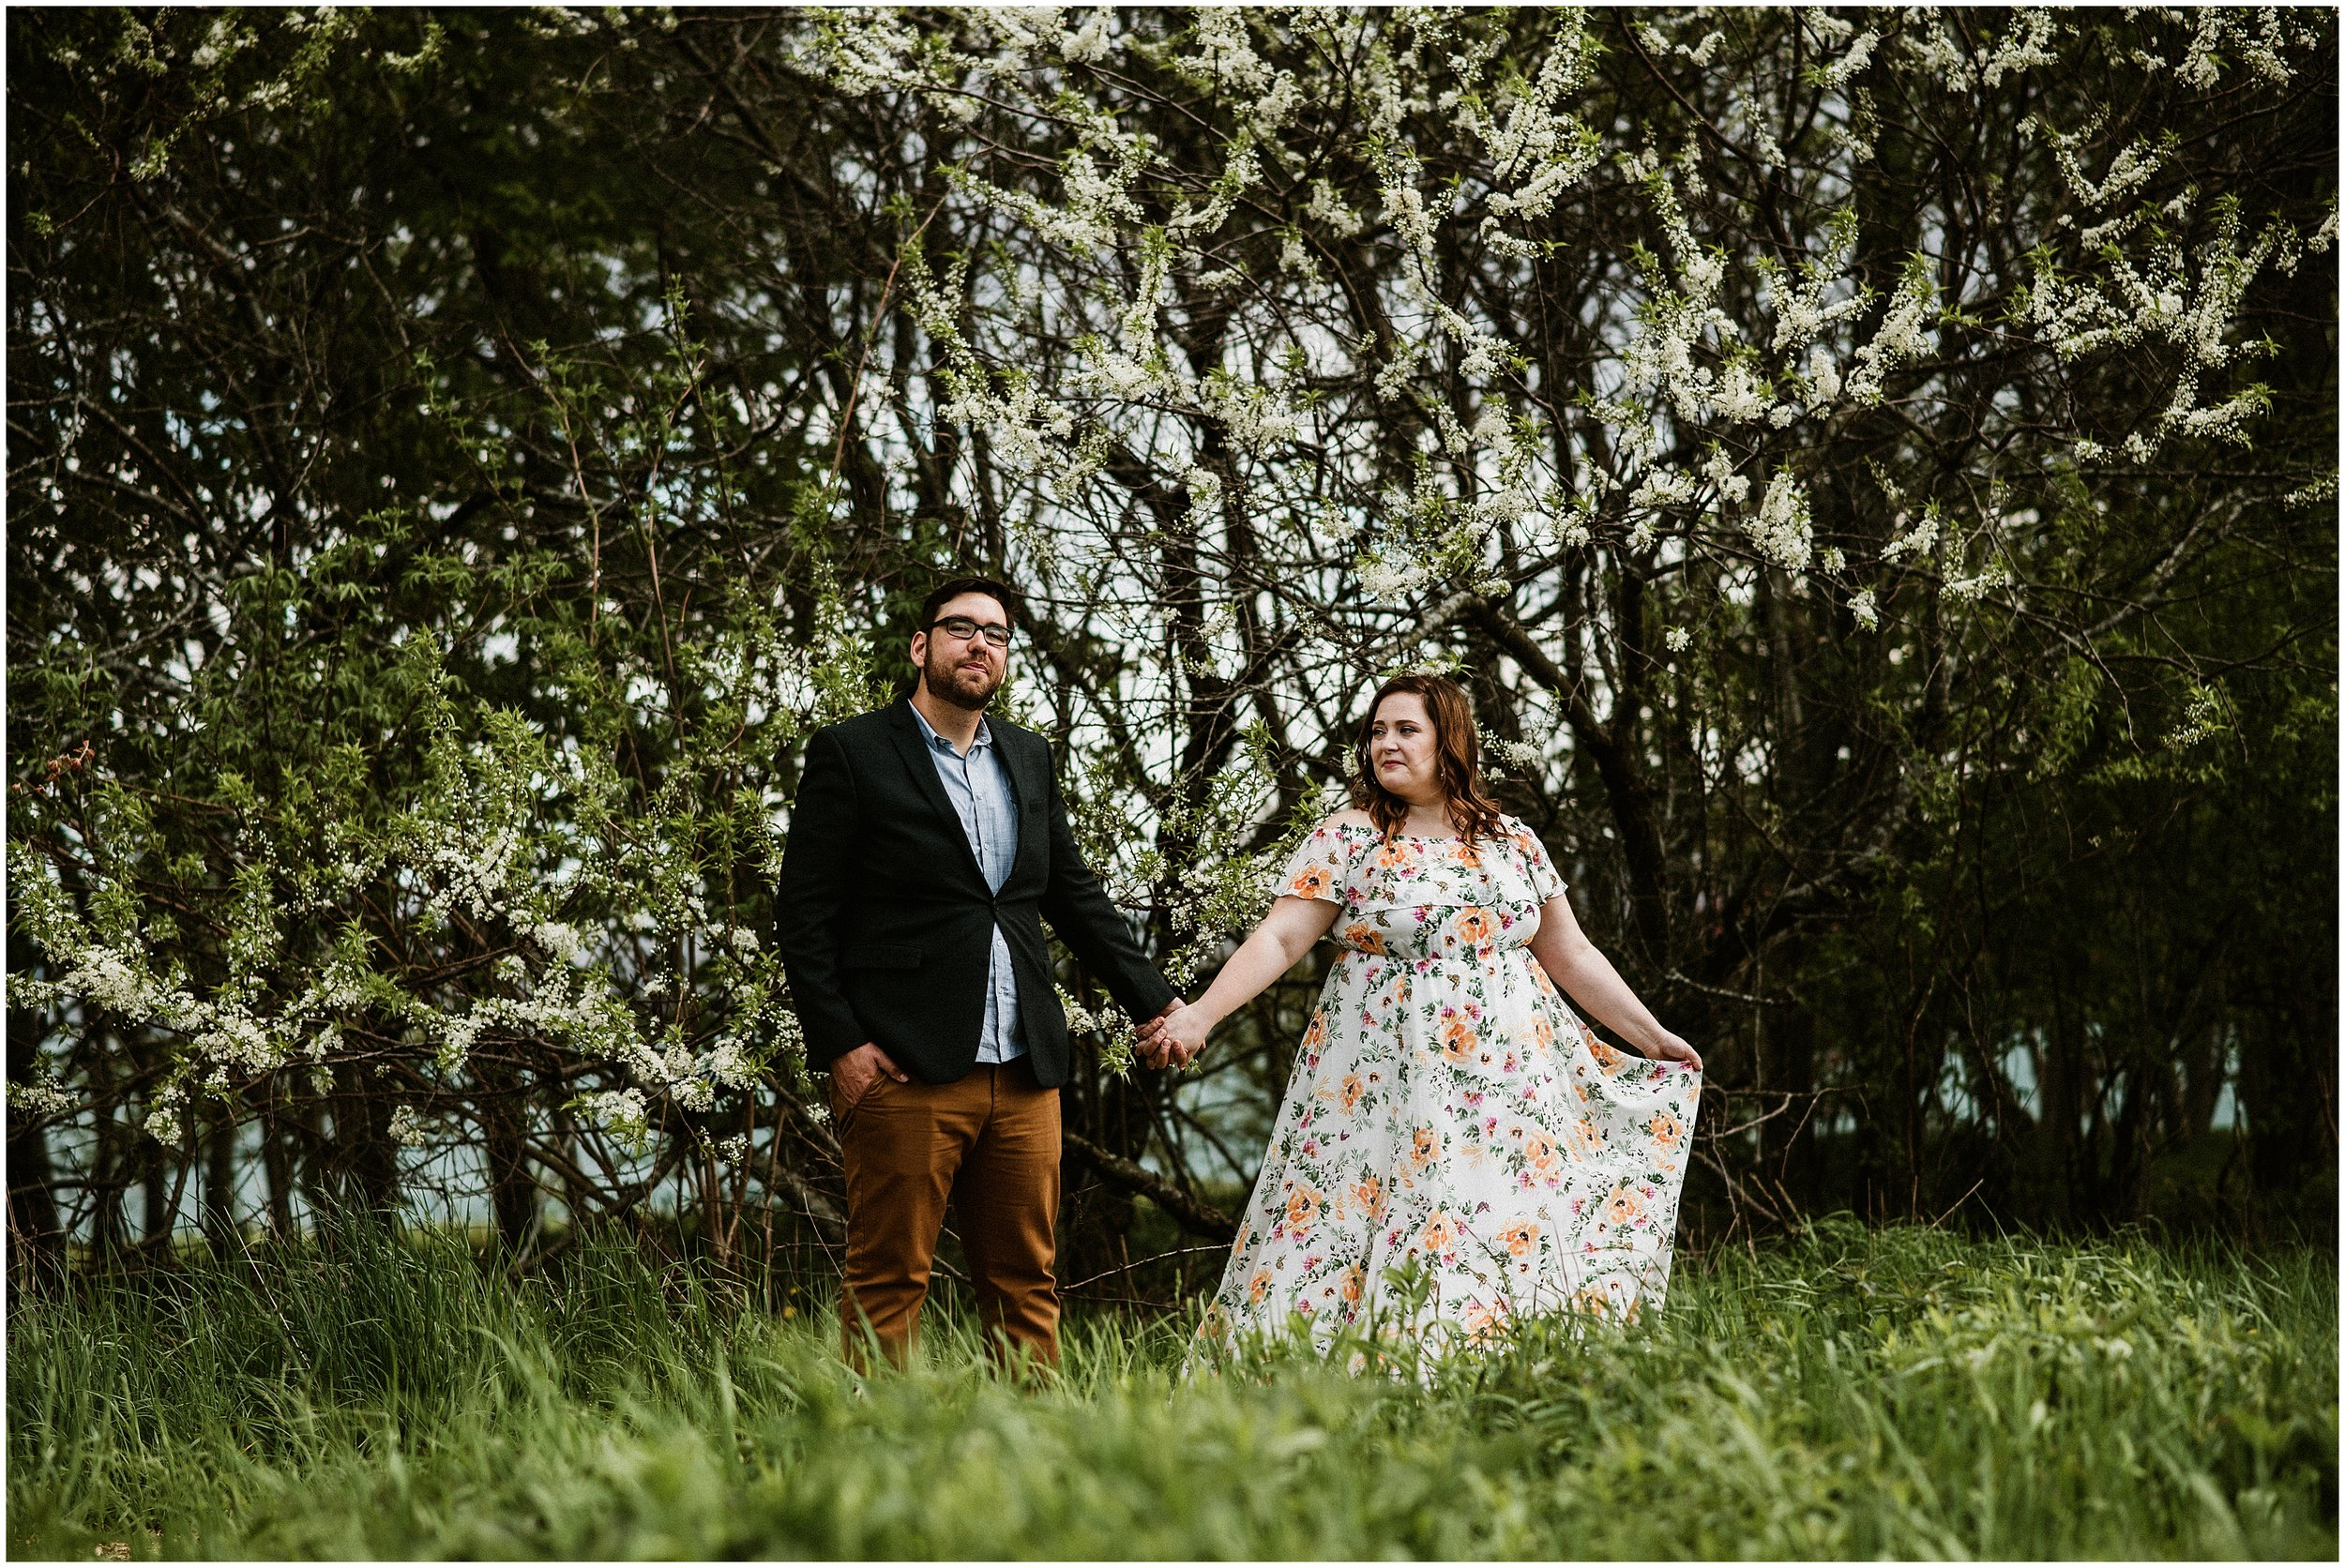 Candace Sims Photography | Brooke and Mike City Engagement Session | Montrose Point Bird Sanctuary | Chicago, IL